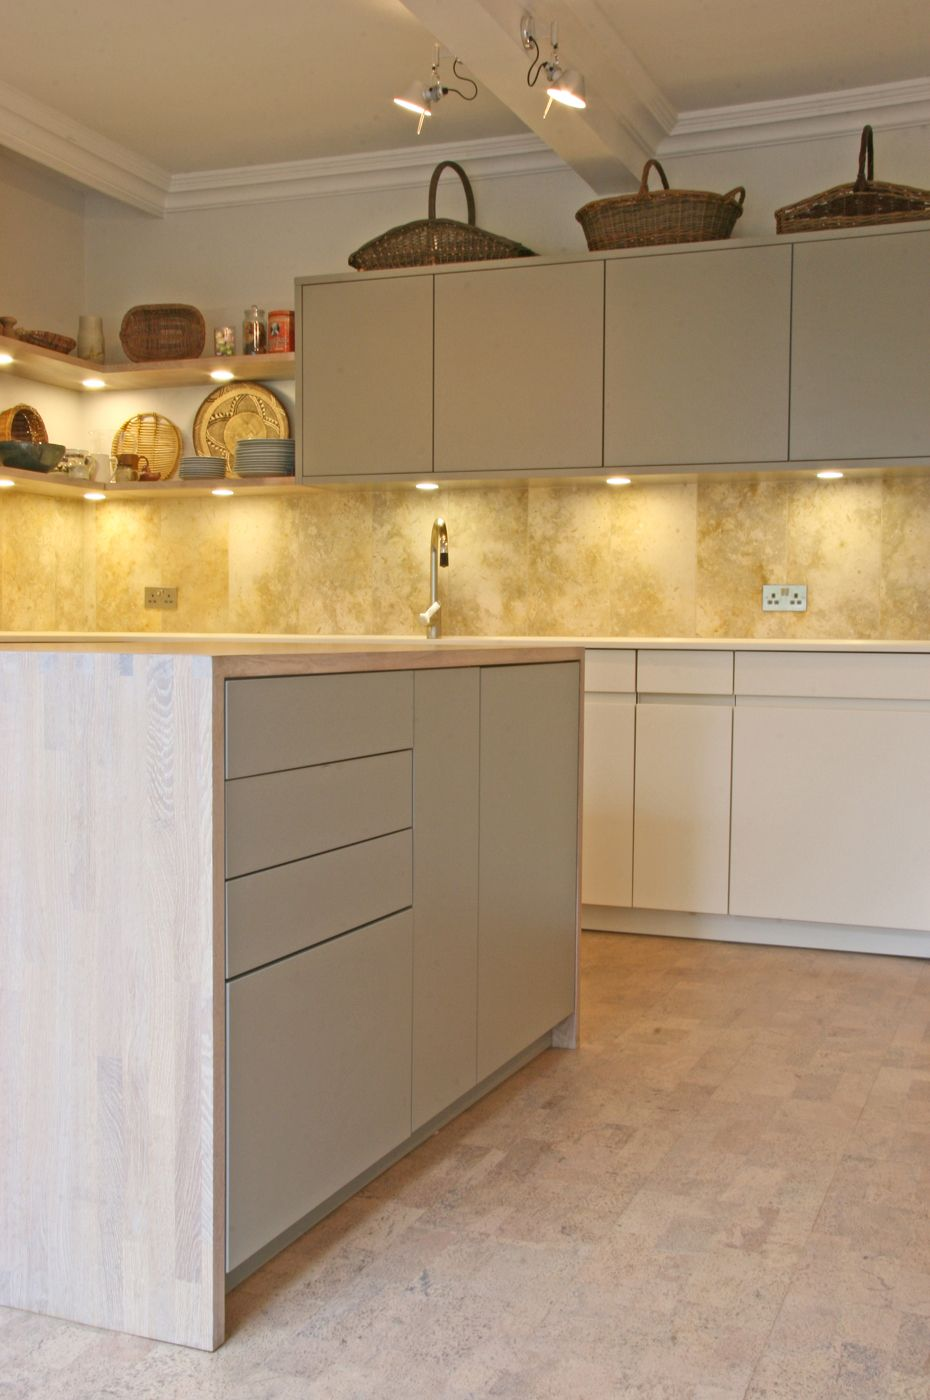 best options for kitchen flooring cork flooring kitchen Kitchen Cork flooring